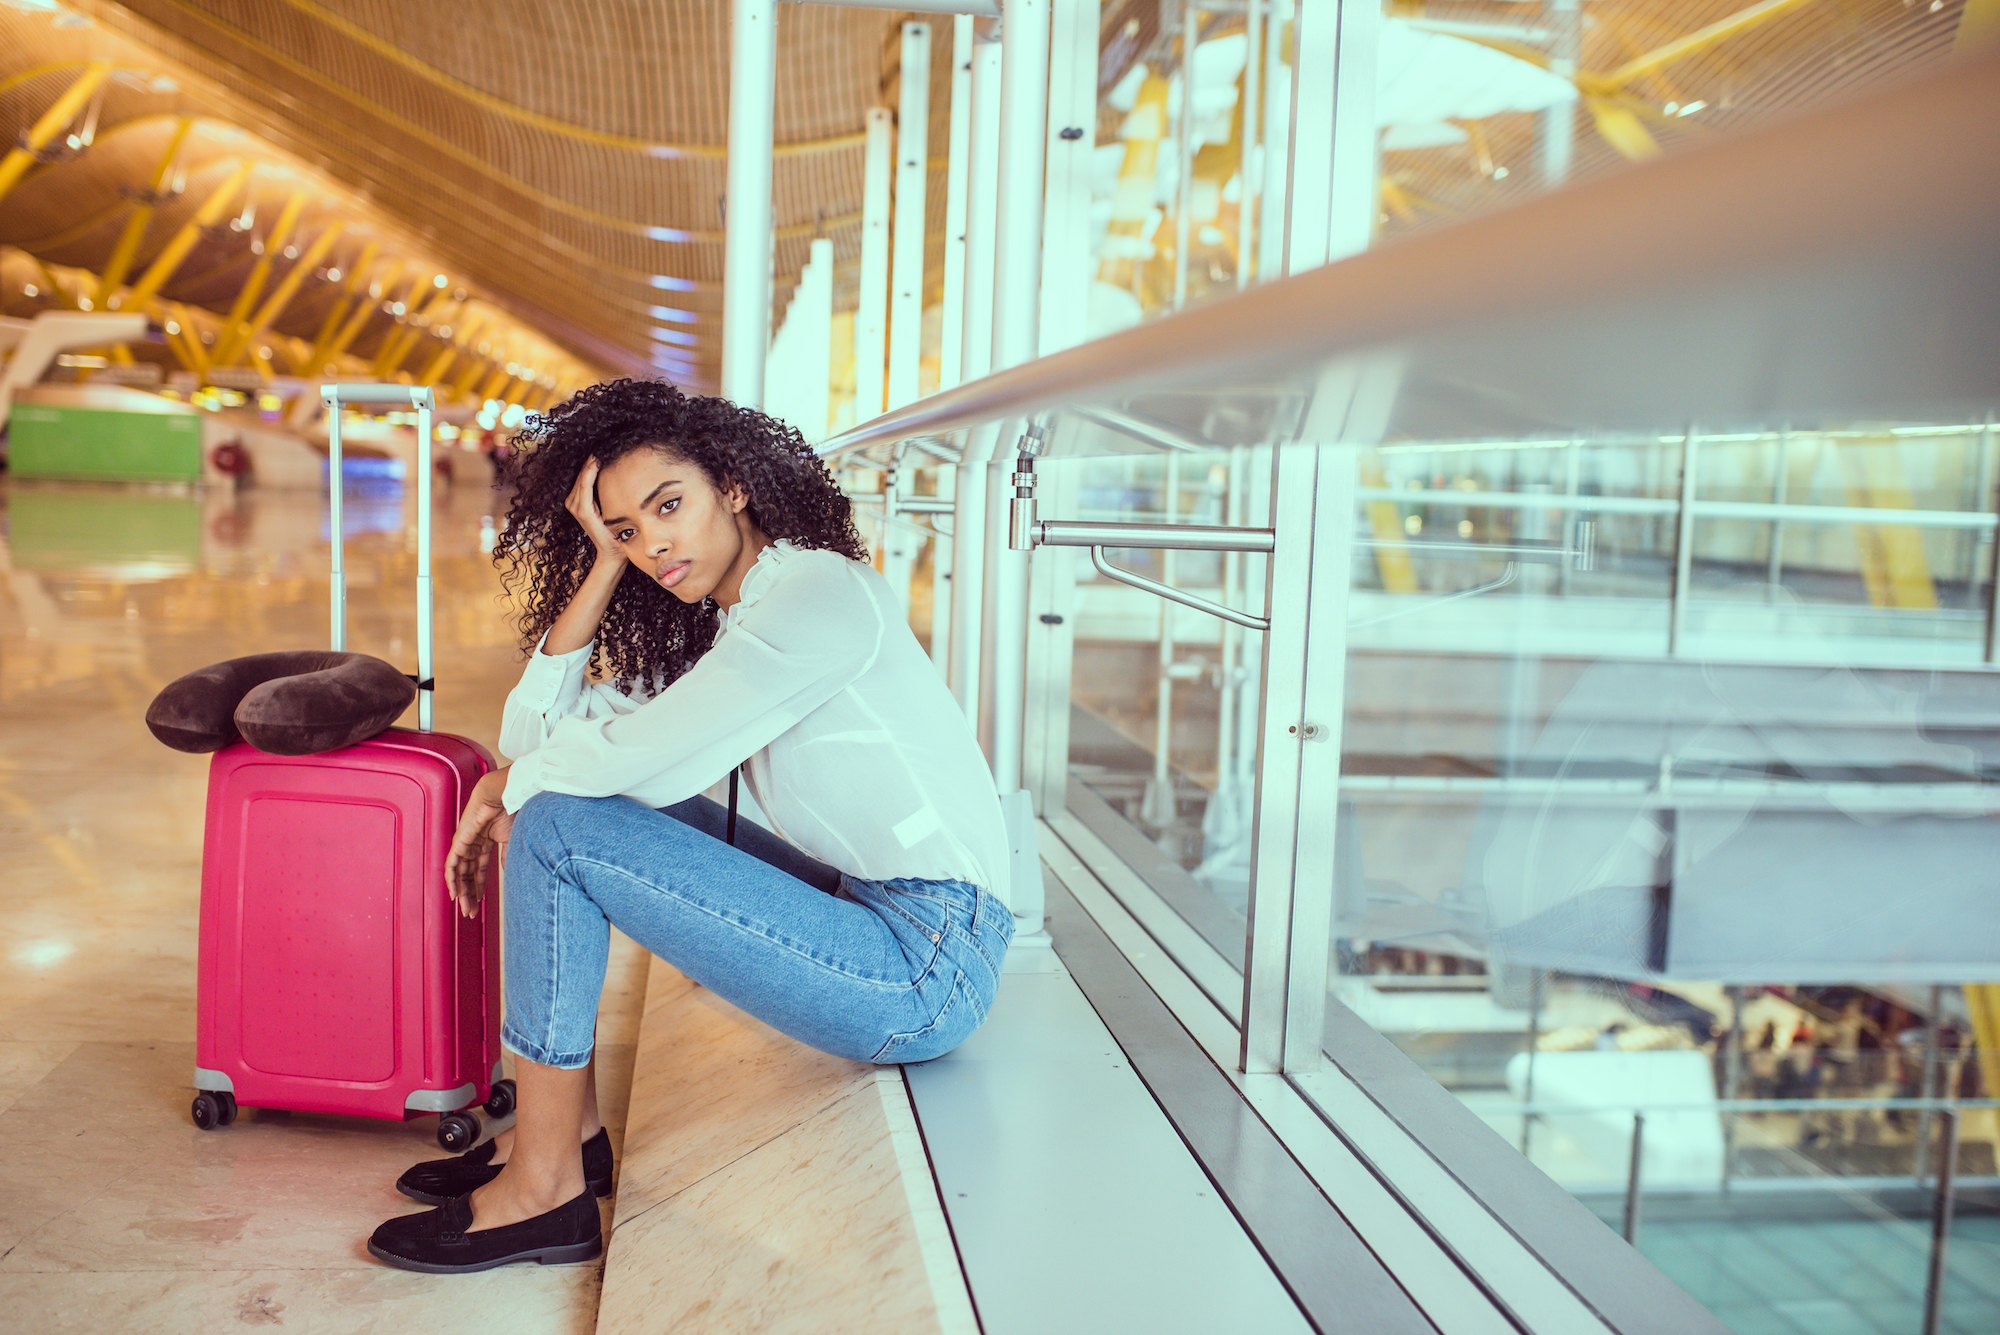 Woman sad and unhappy at the airport